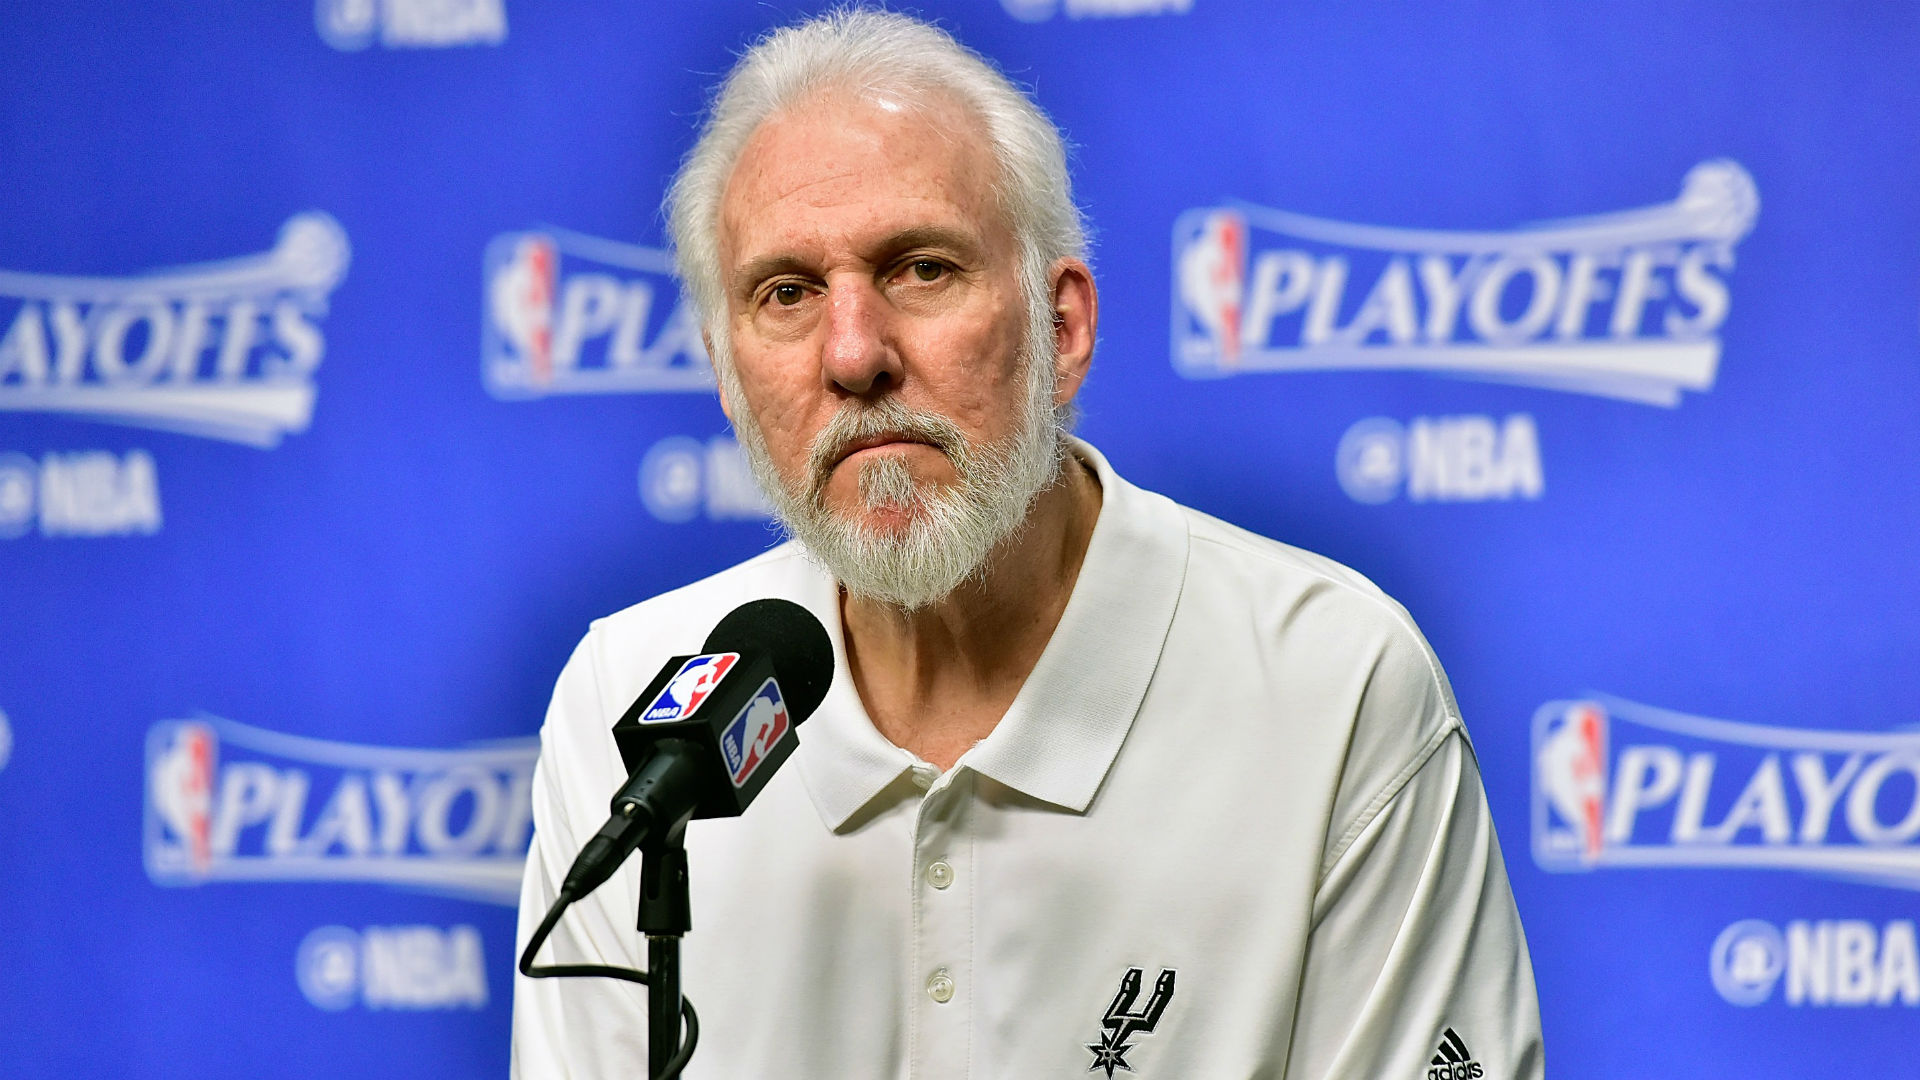 Gregg Popovich rips 'deranged idiot' Donald Trump, other politicians in takedown of American leadership 1